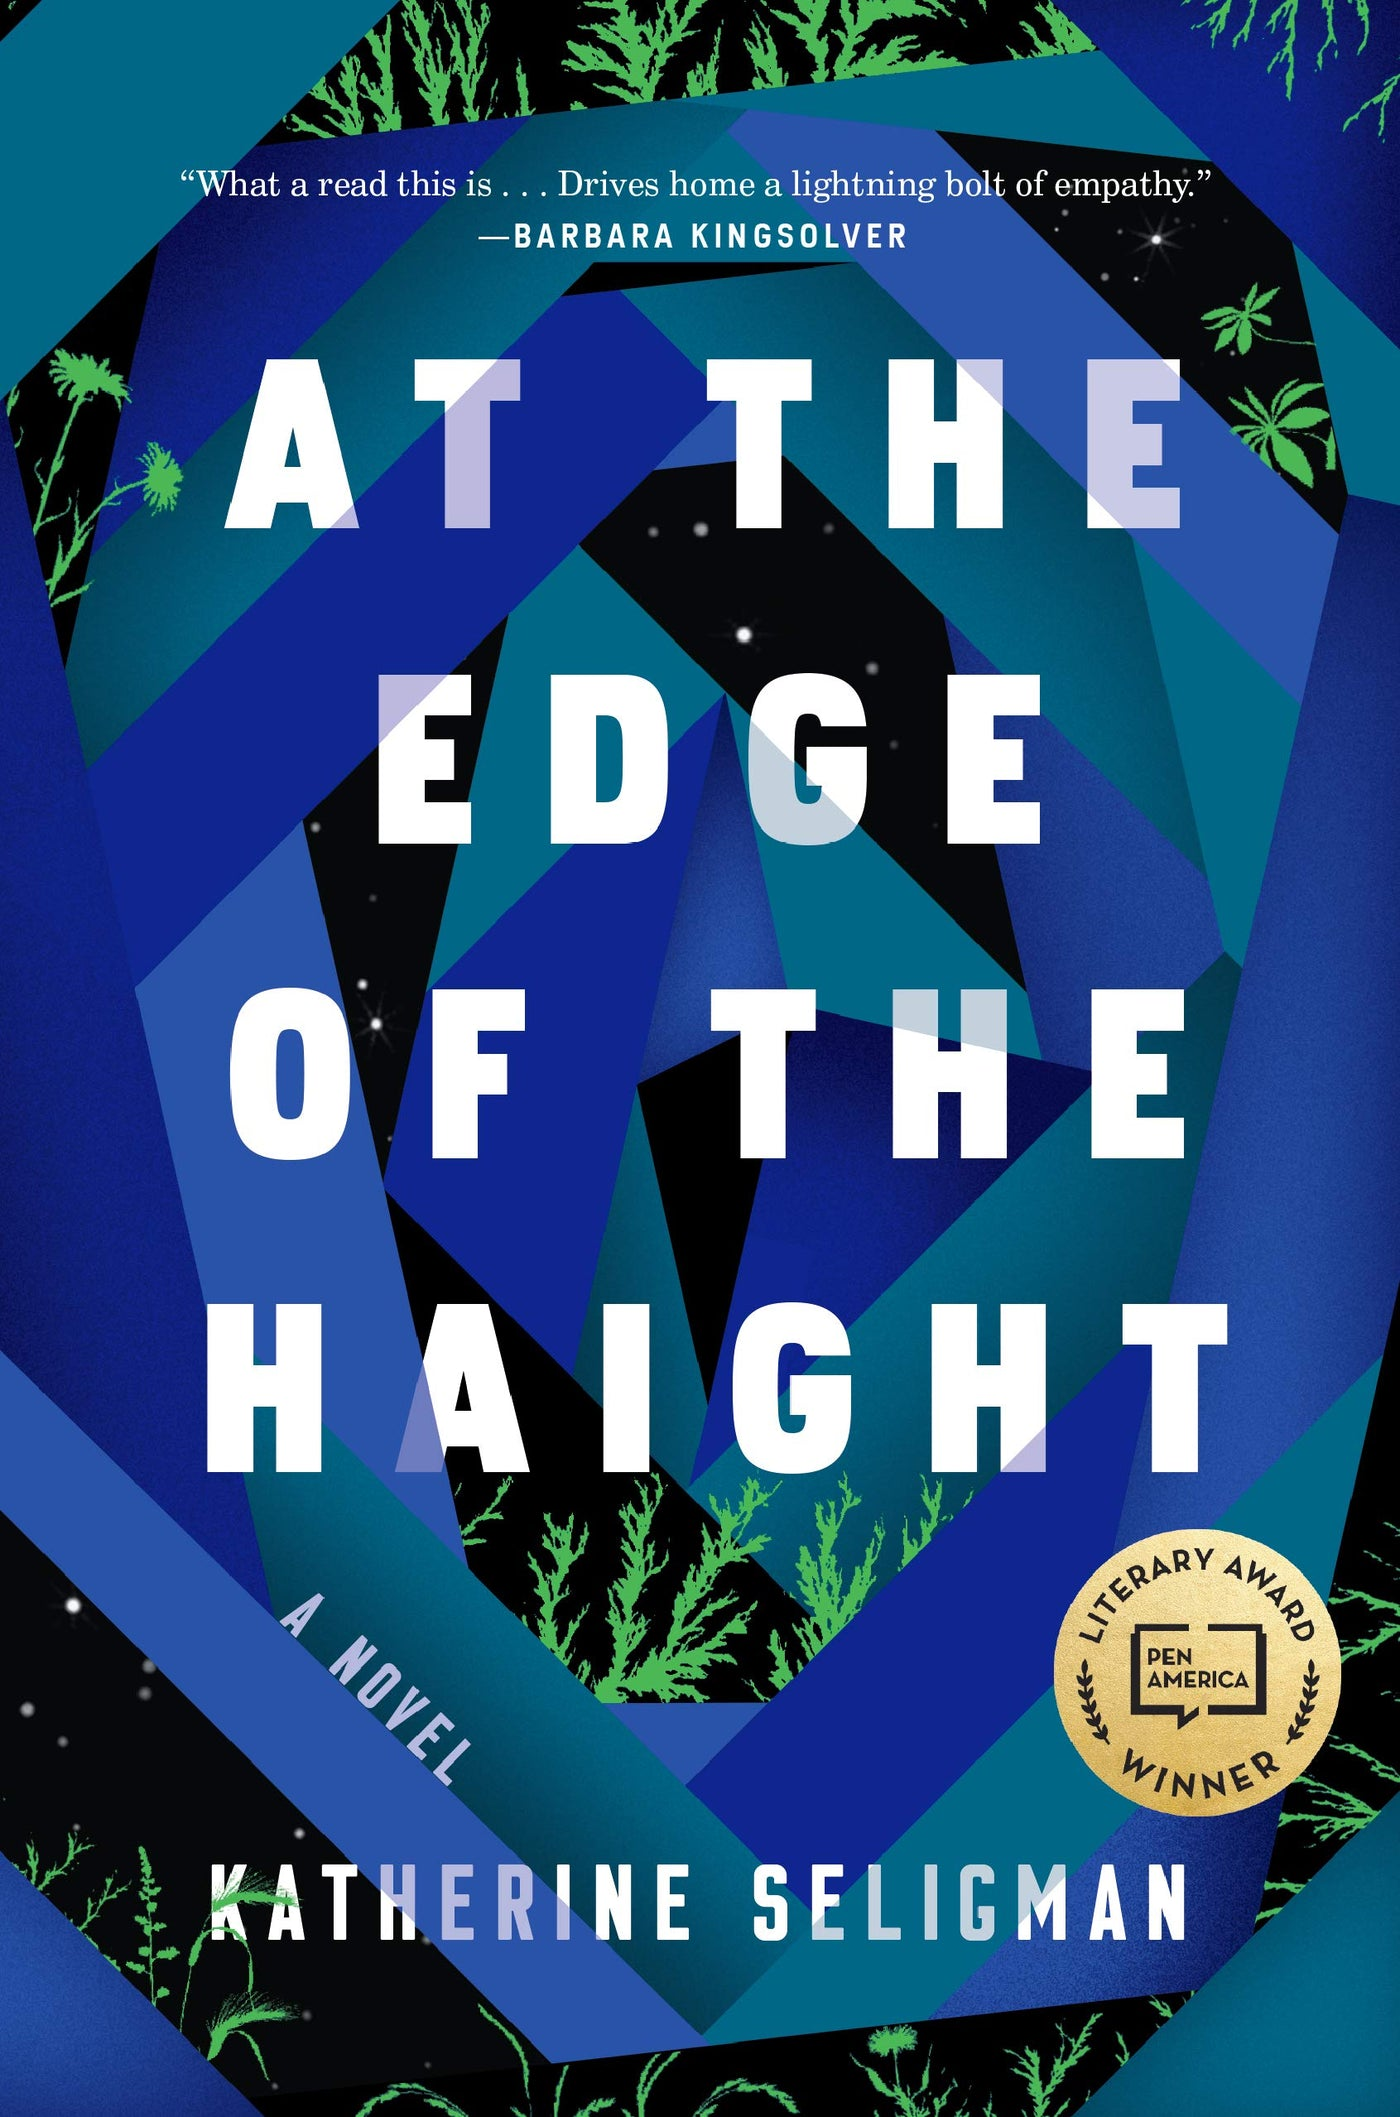 At the Edge of the Haight, by Katherine Seligman